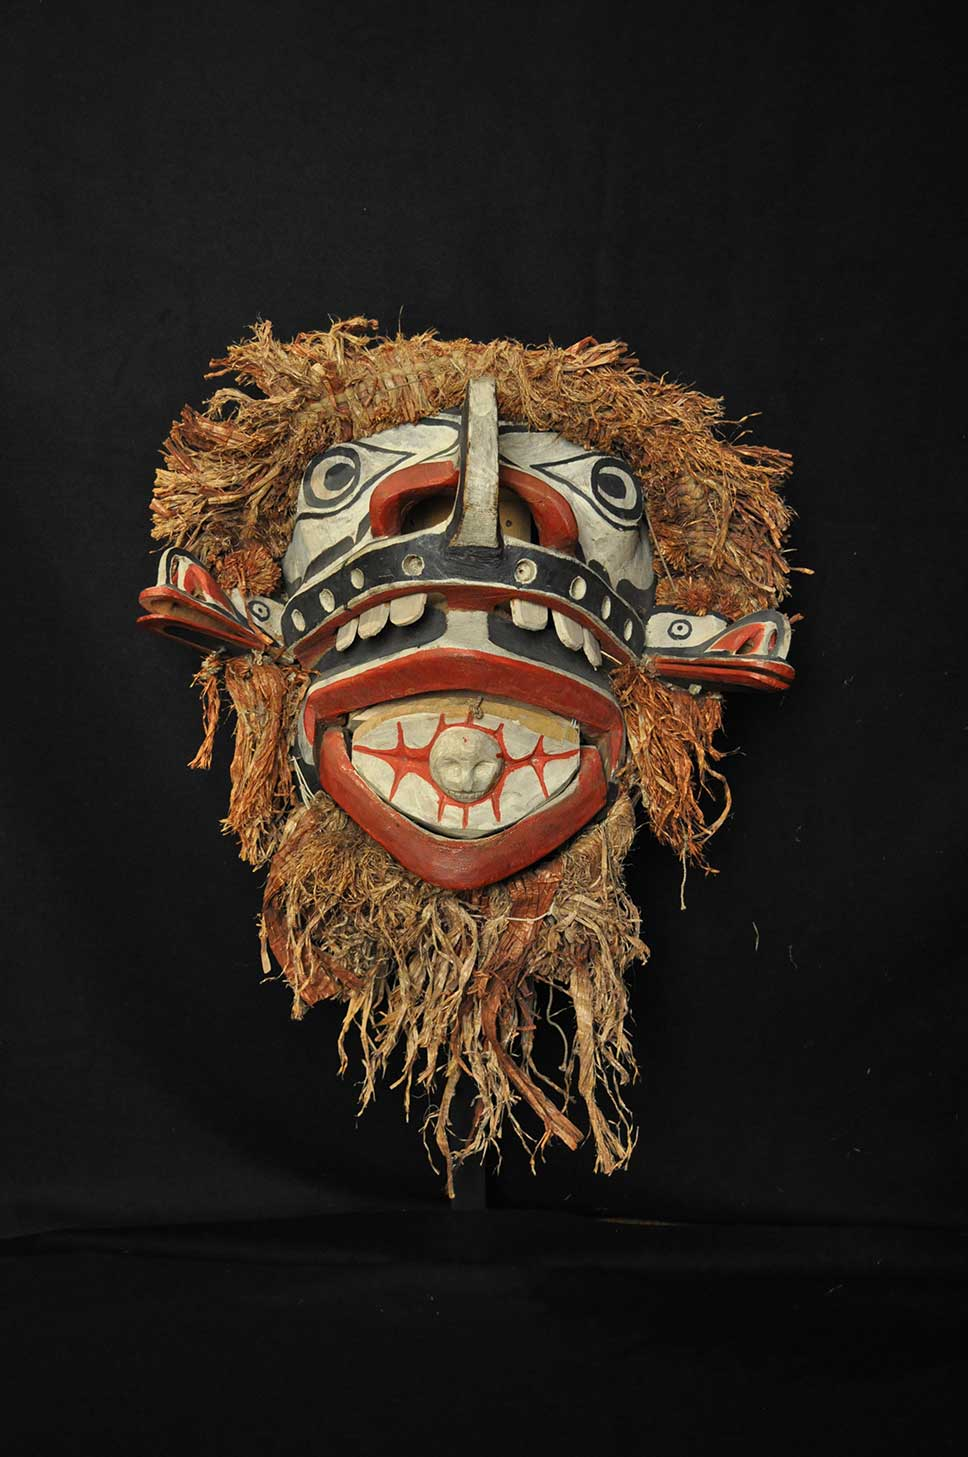 Still image of BAXWBAKWALANUKSIWE' – MAN-EATER-AT-THE-NORTH-END-OF-THE-WORLD mask shot against a black background